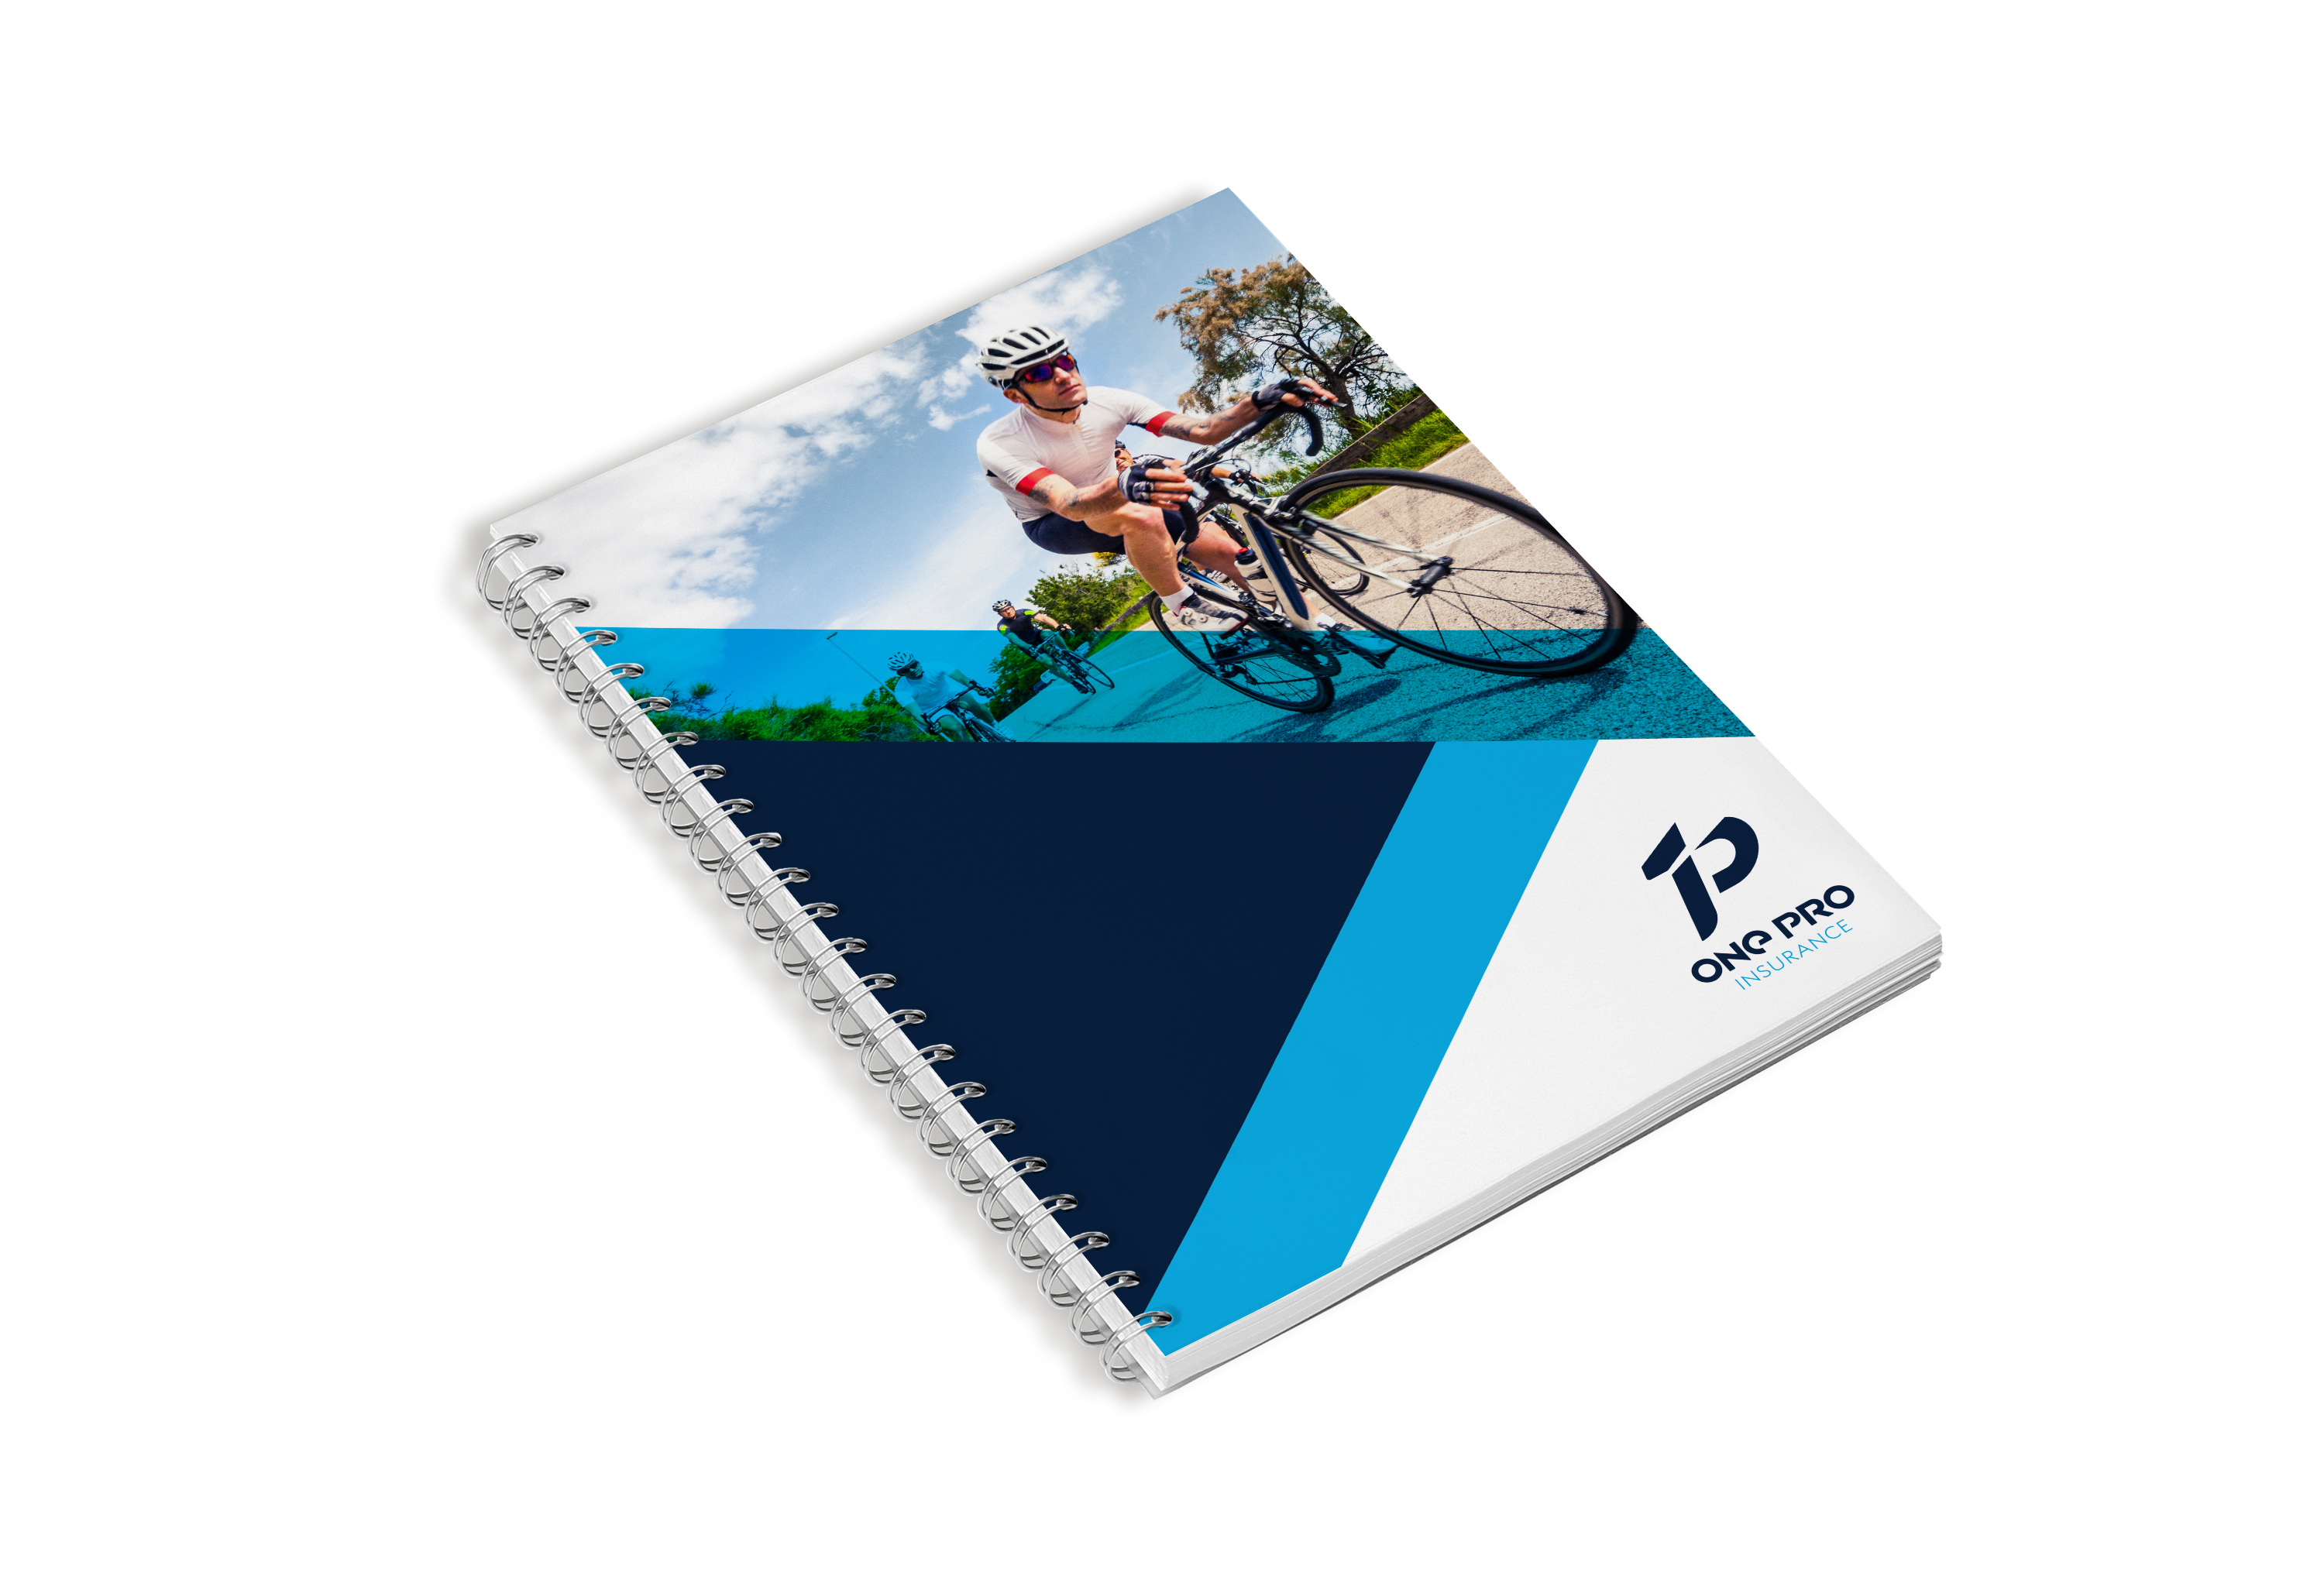 New ONE Pro – Binded Booklet